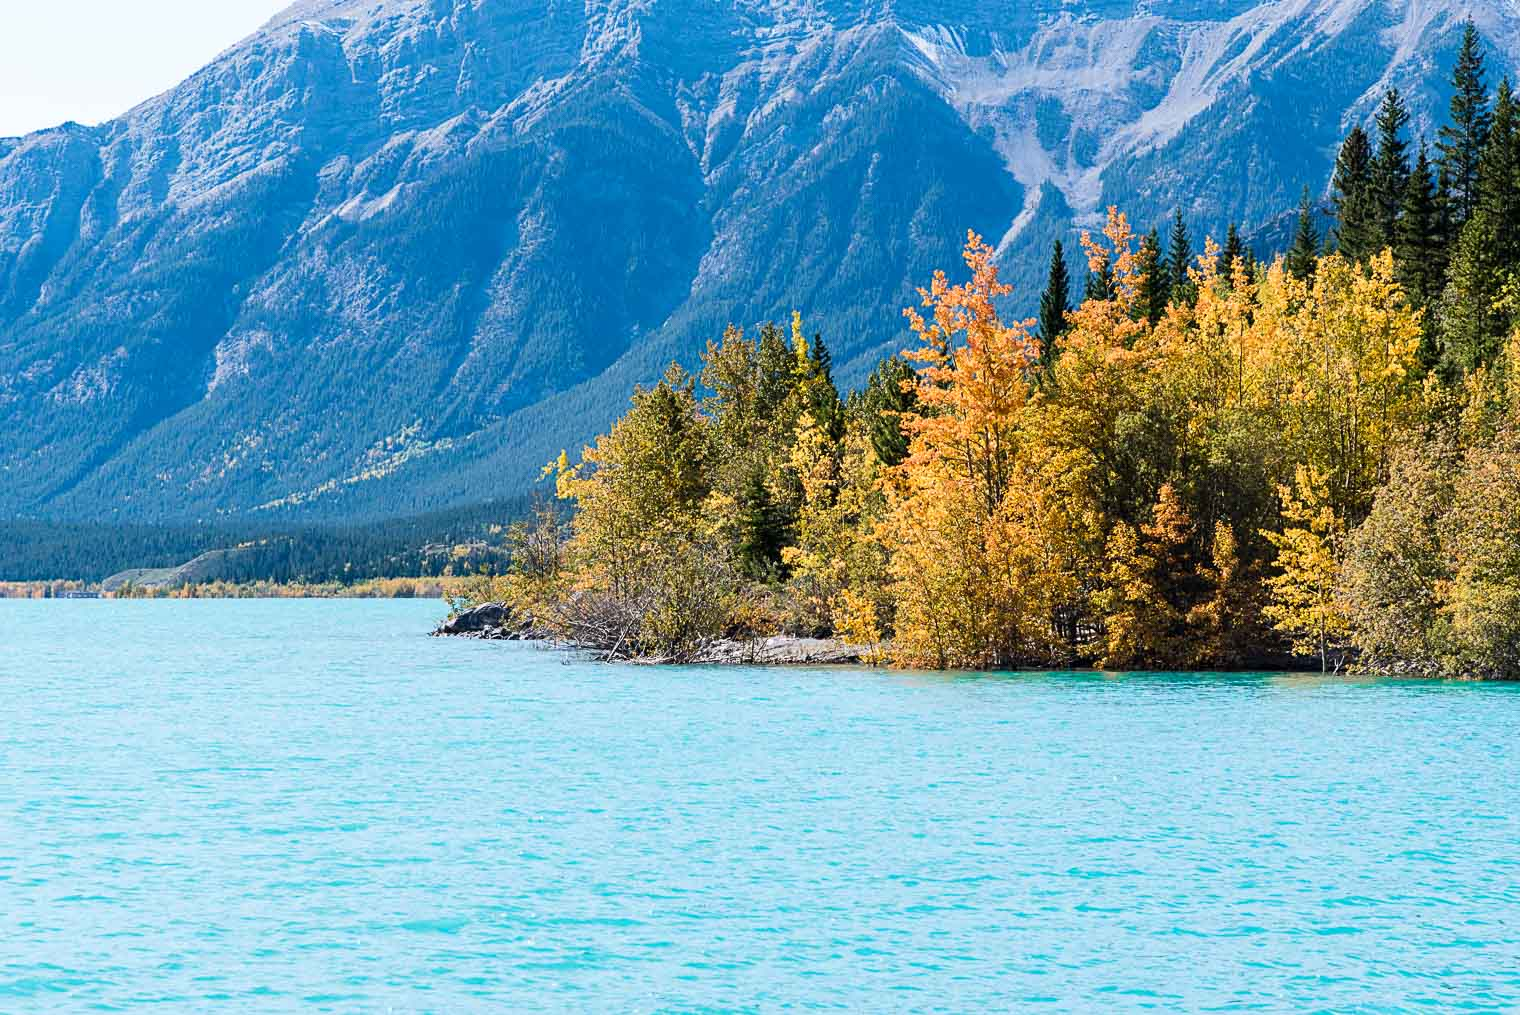 Abraham Lake, Alberta Canada, Keeping With the Times